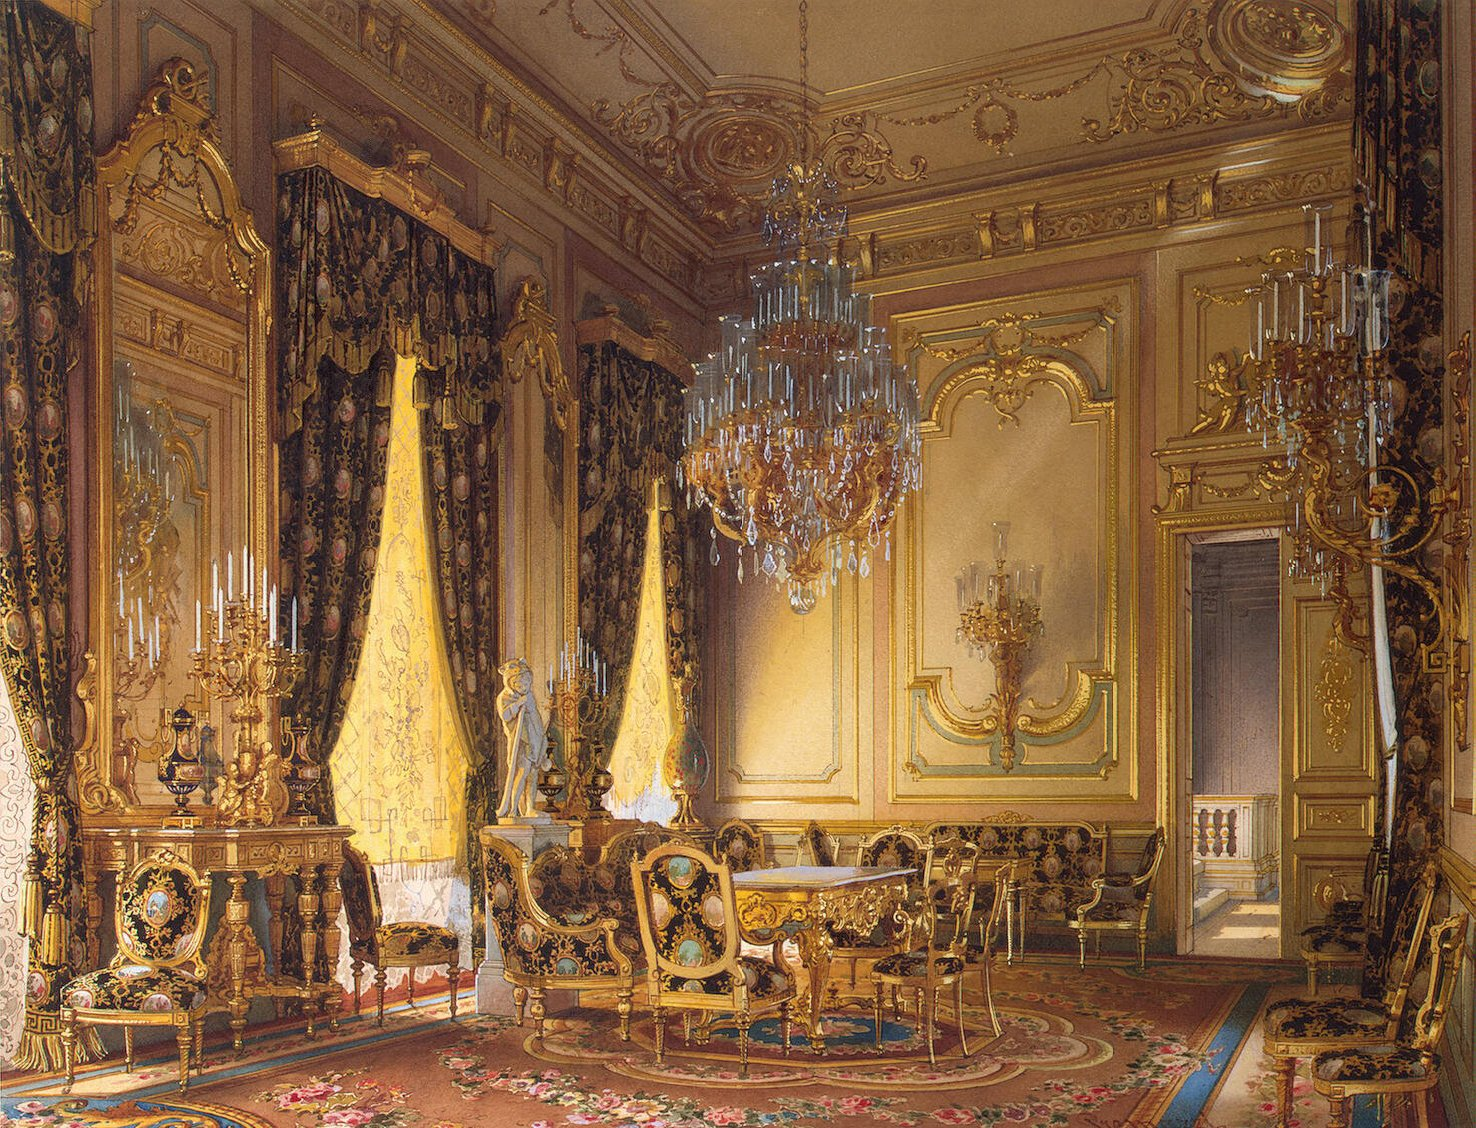 Paintings of exquisite palace interiors: Luigi Premazzi, Mansion of Baron A. L. Stieglitz. The Golden Drawing-Room, ca. 1870, The State Hermitage Museum, St. Petersburg, Russia.